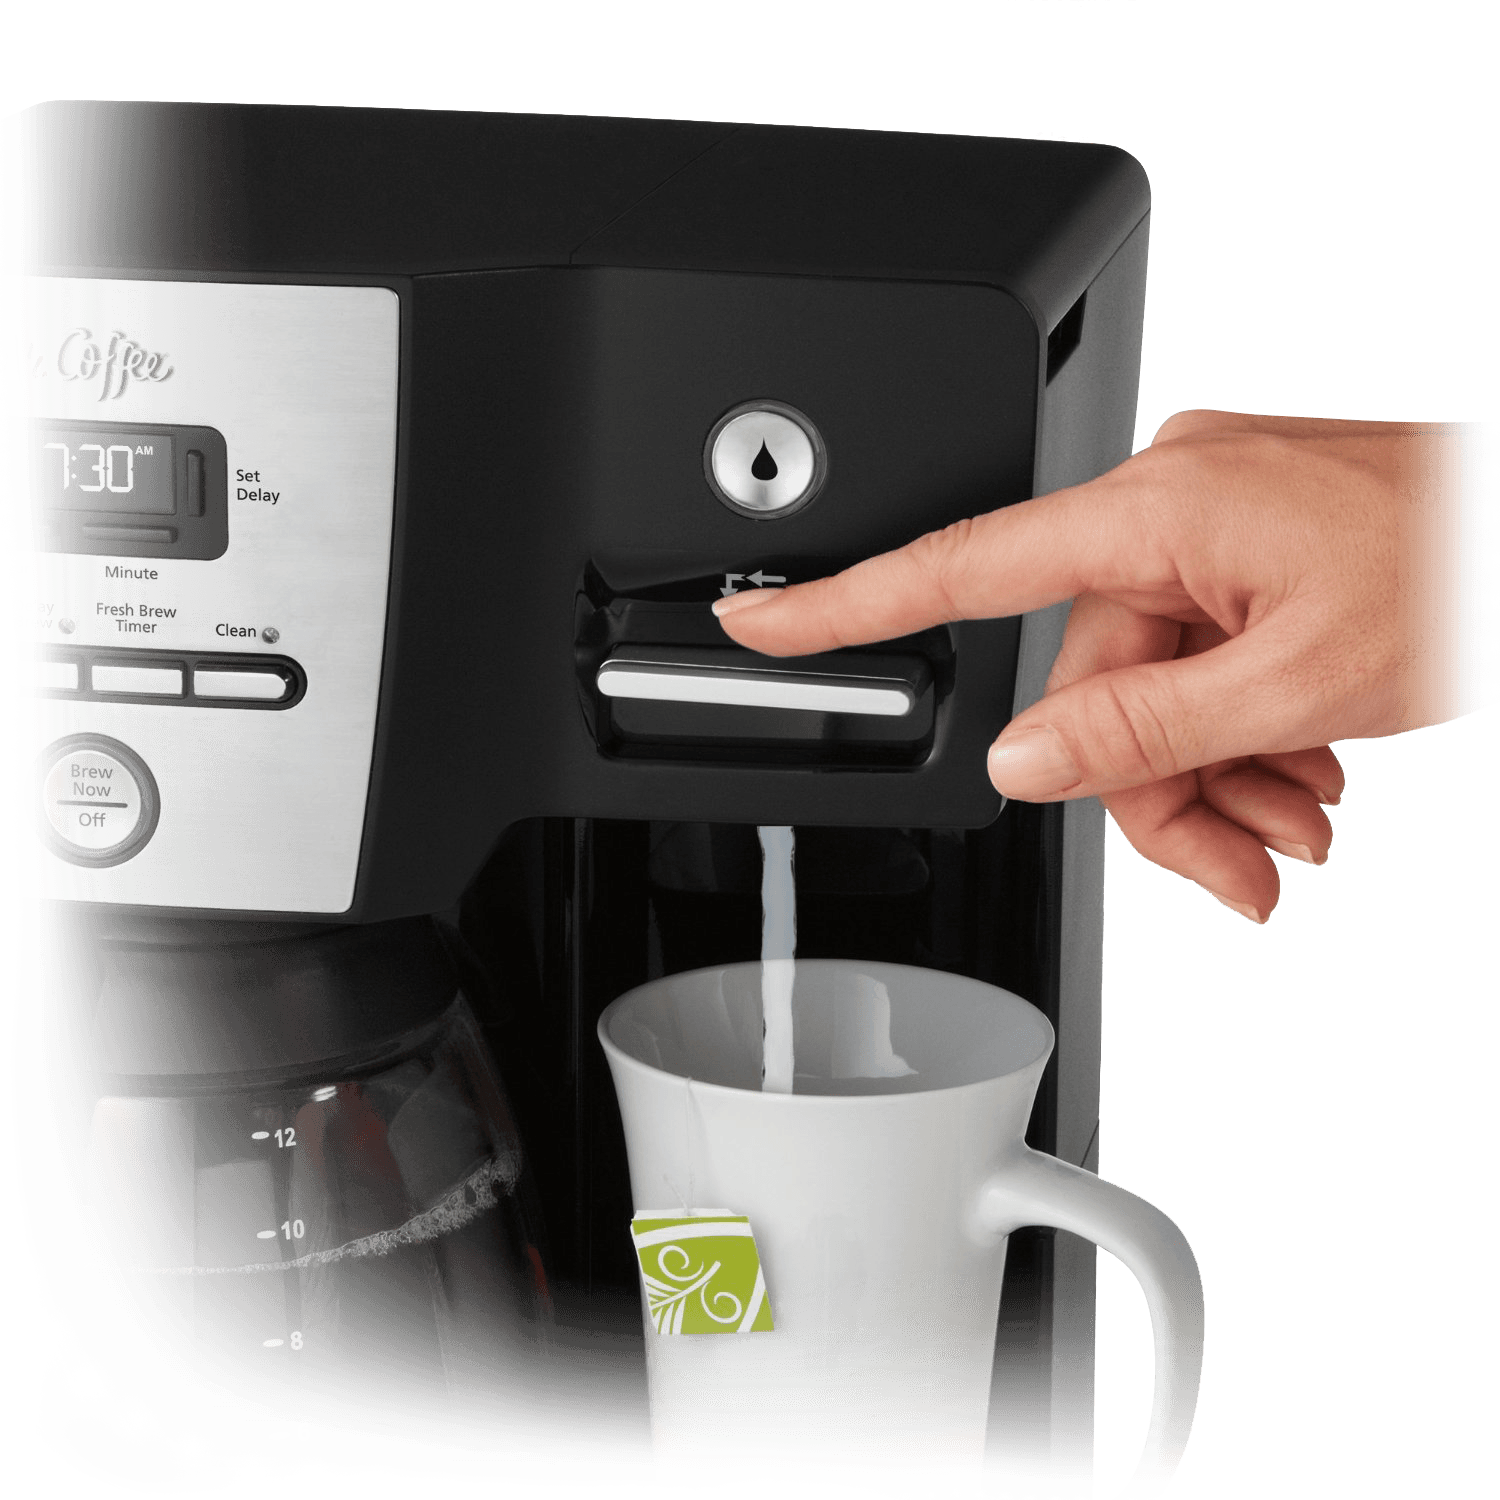 Drip Coffee Maker Hot Water : Mr. Coffee Versatile Brew Coffee Maker and Hot Water Dispenser (Refurbished)